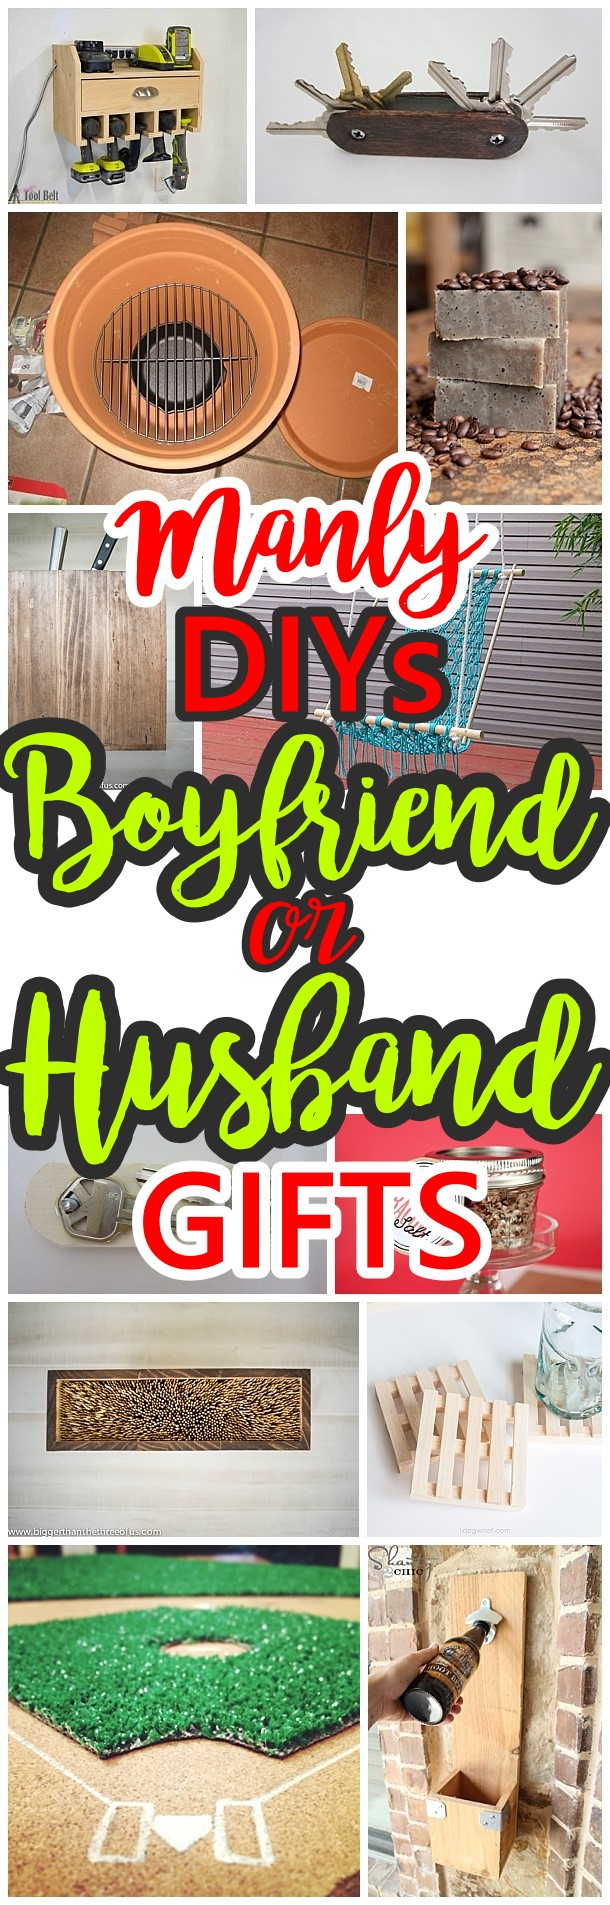 Manly do it yourself boyfriend and husband gift ideas masculine do it yourself manly gift ideas for boyfriends husbands sons brothers uncles solutioingenieria Choice Image